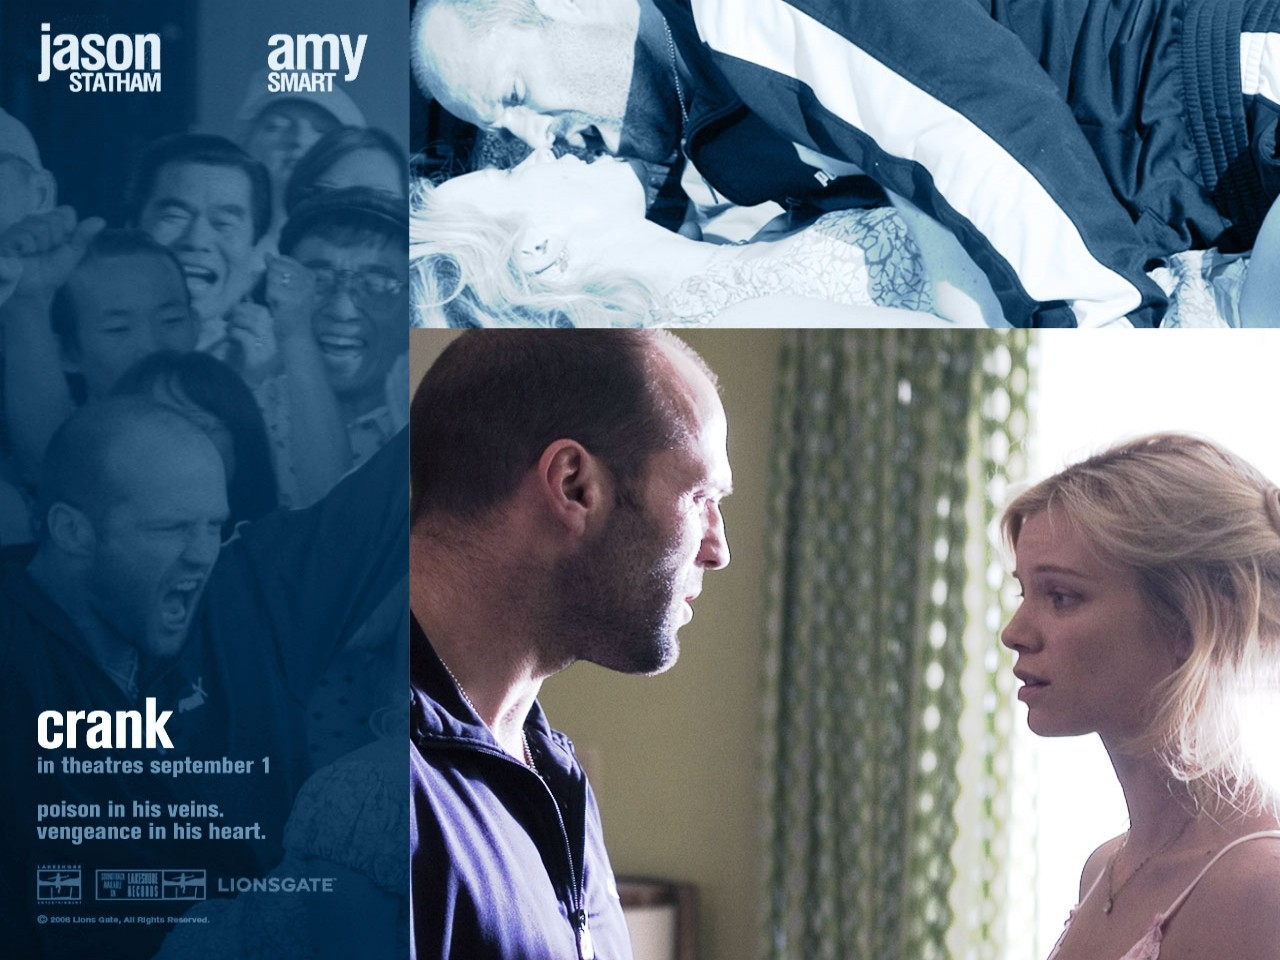 Wallpaper del film Crank: Jason Statham e Amy Smart